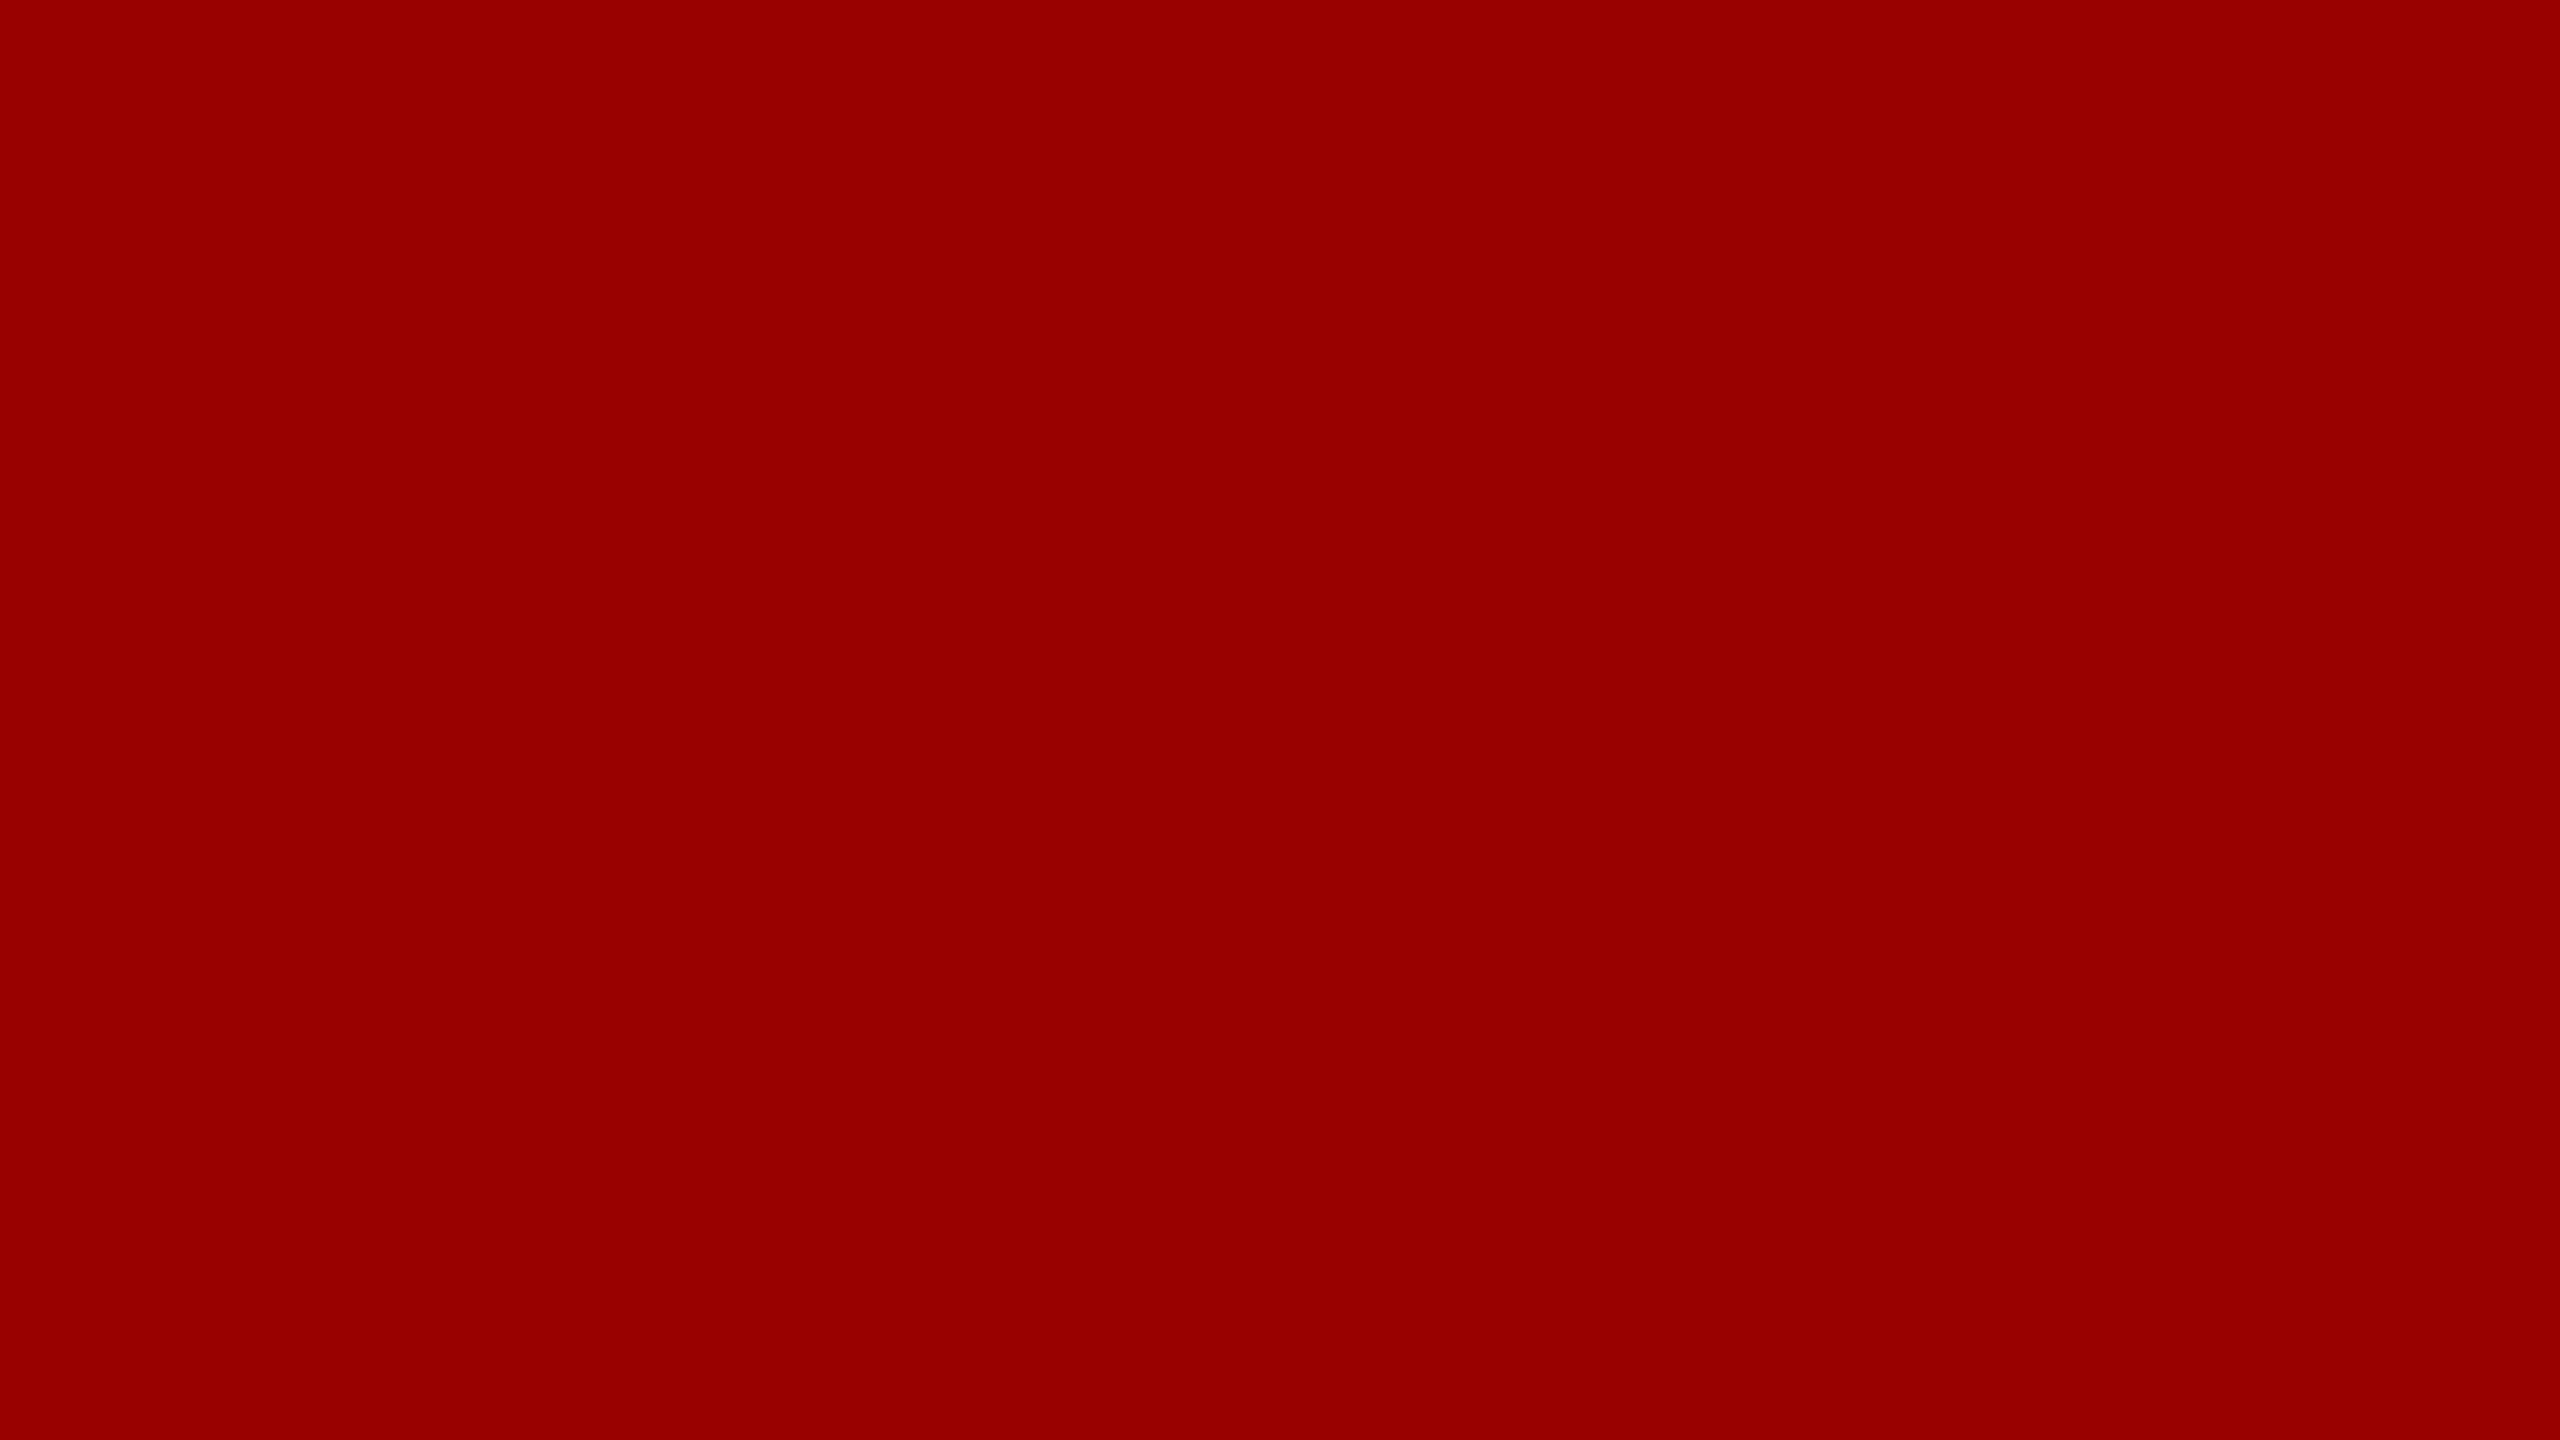 2560x1440 USC Cardinal Solid Color Background